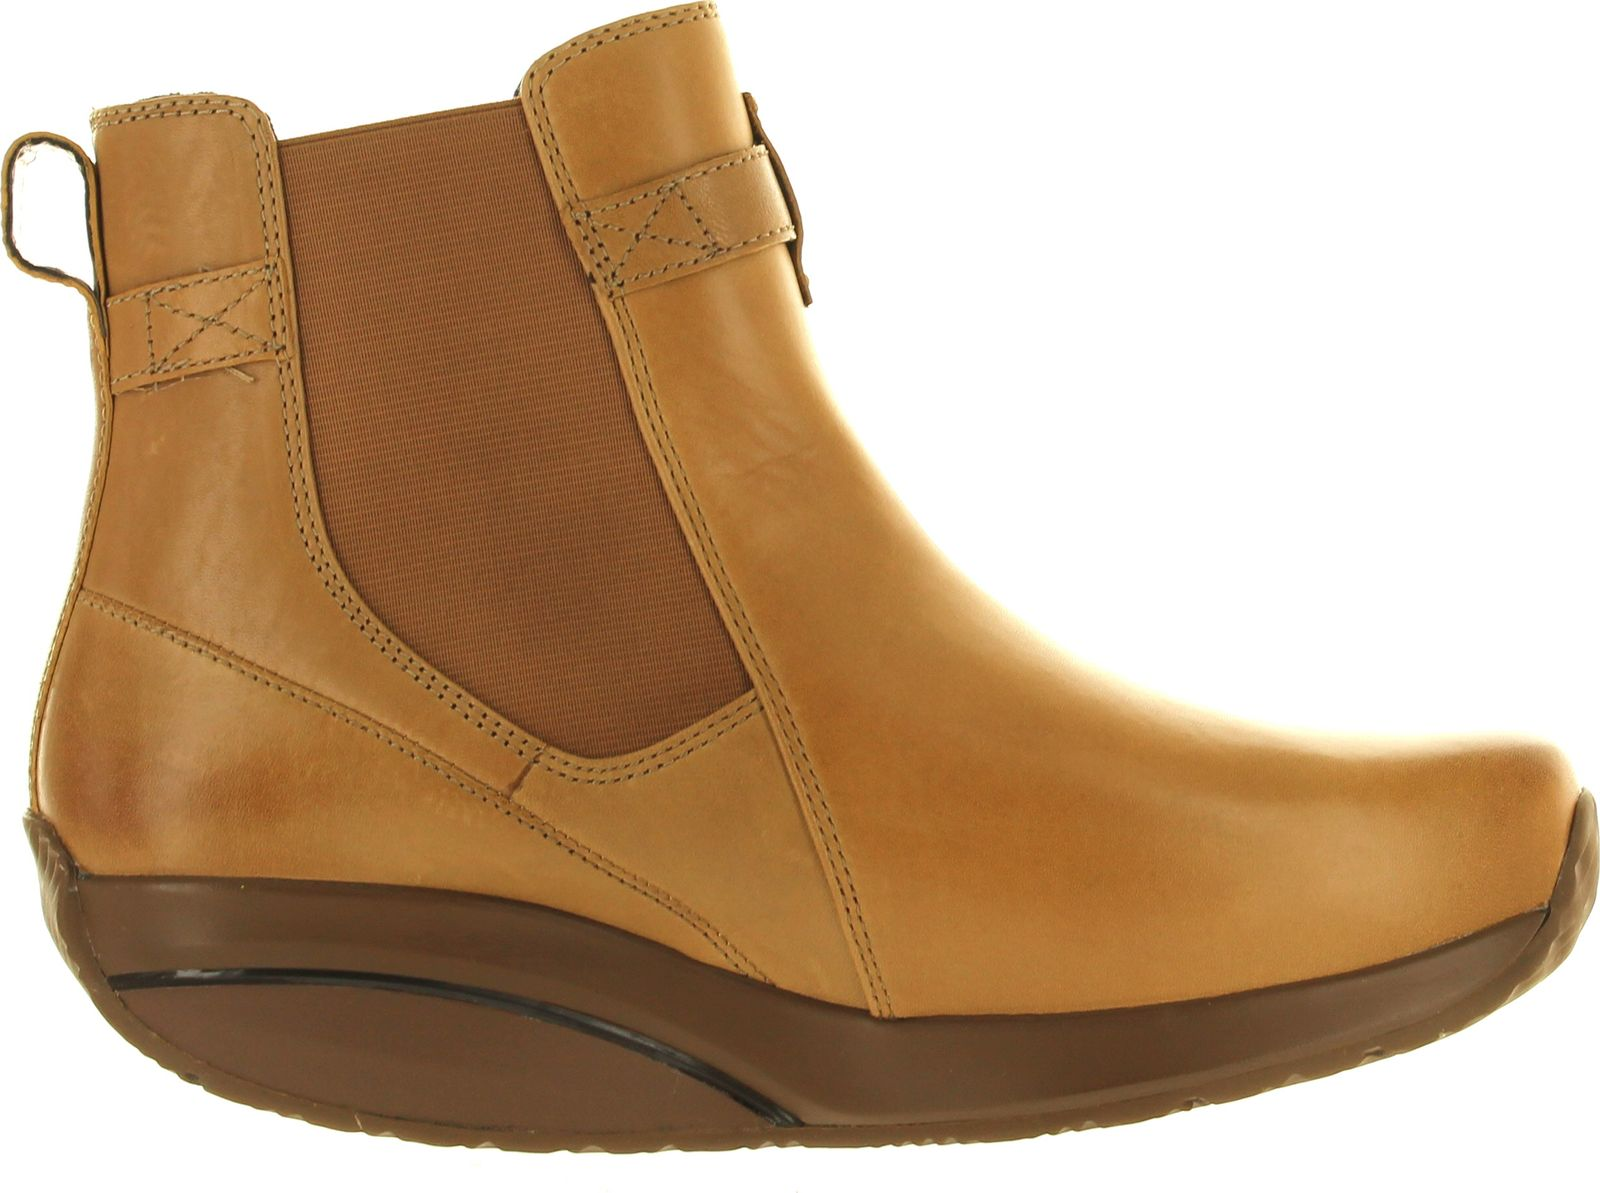 26f7ea031c82 Mbt-Kisiwa-Chelsea-2-Toffee-Ladies-Casual-Shoe thumbnail